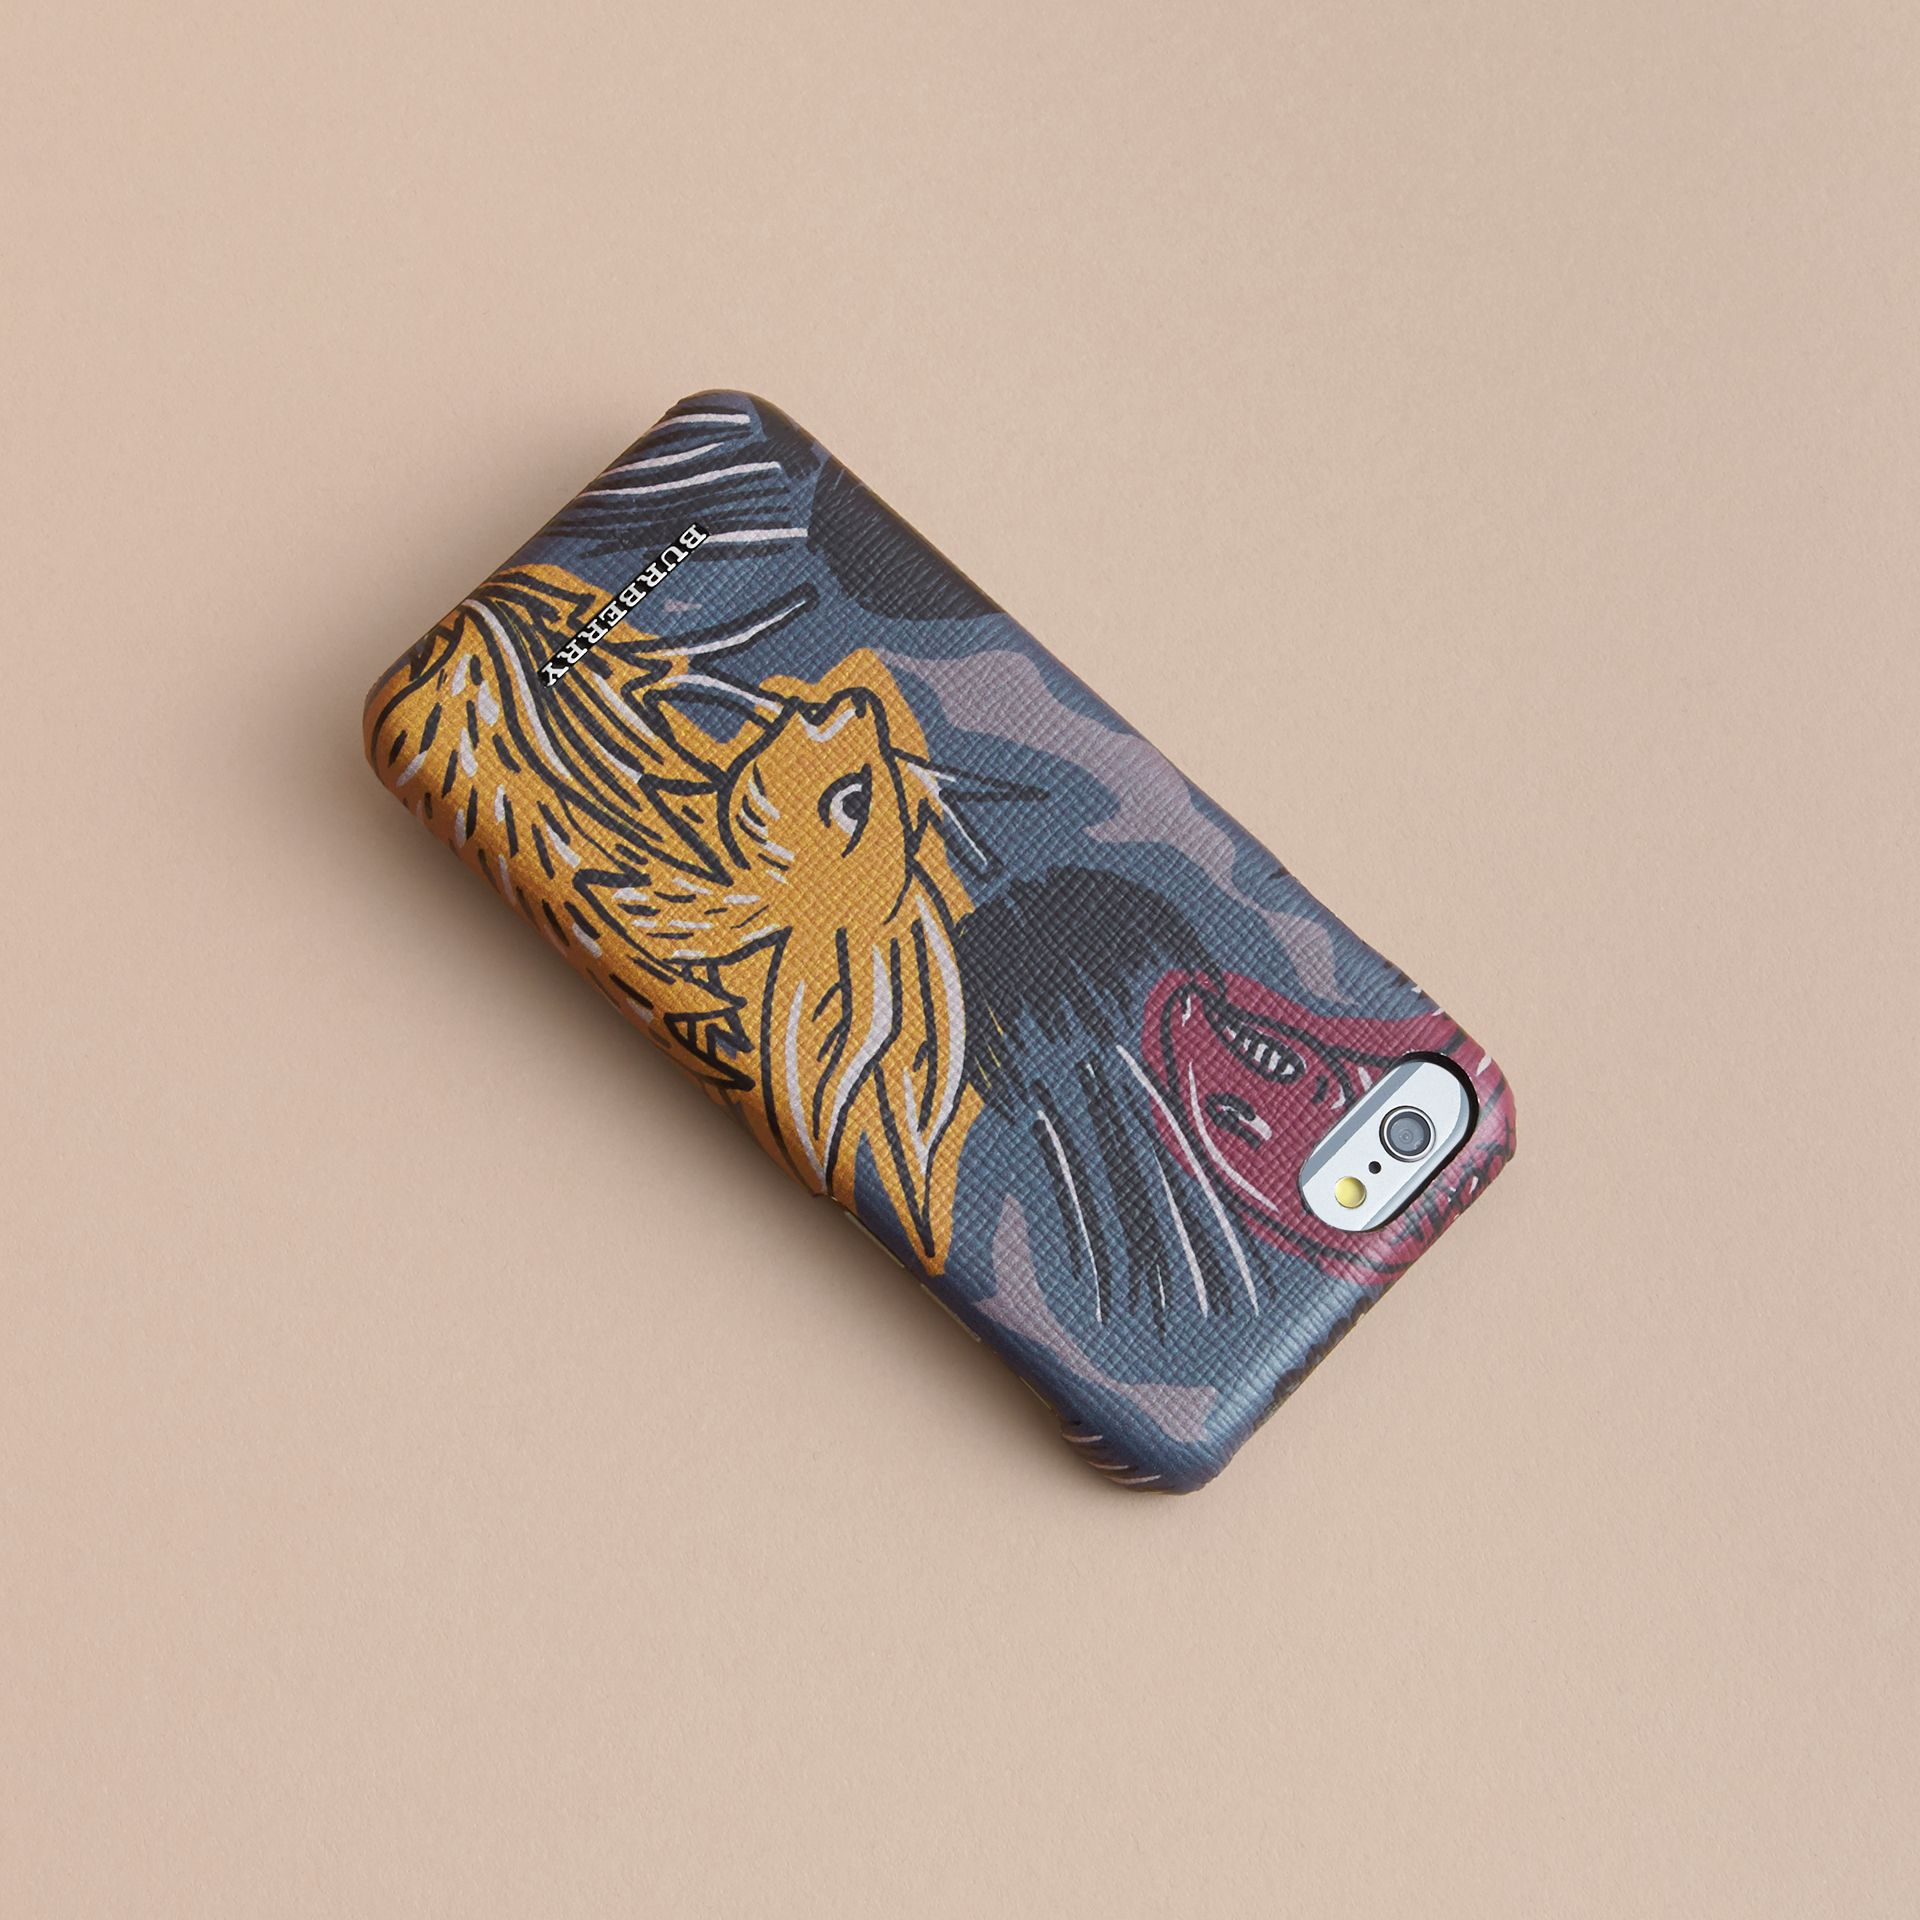 Beasts Print London Leather iPhone 7 Case in Navy Grey - Men | Burberry United Kingdom - gallery image 3